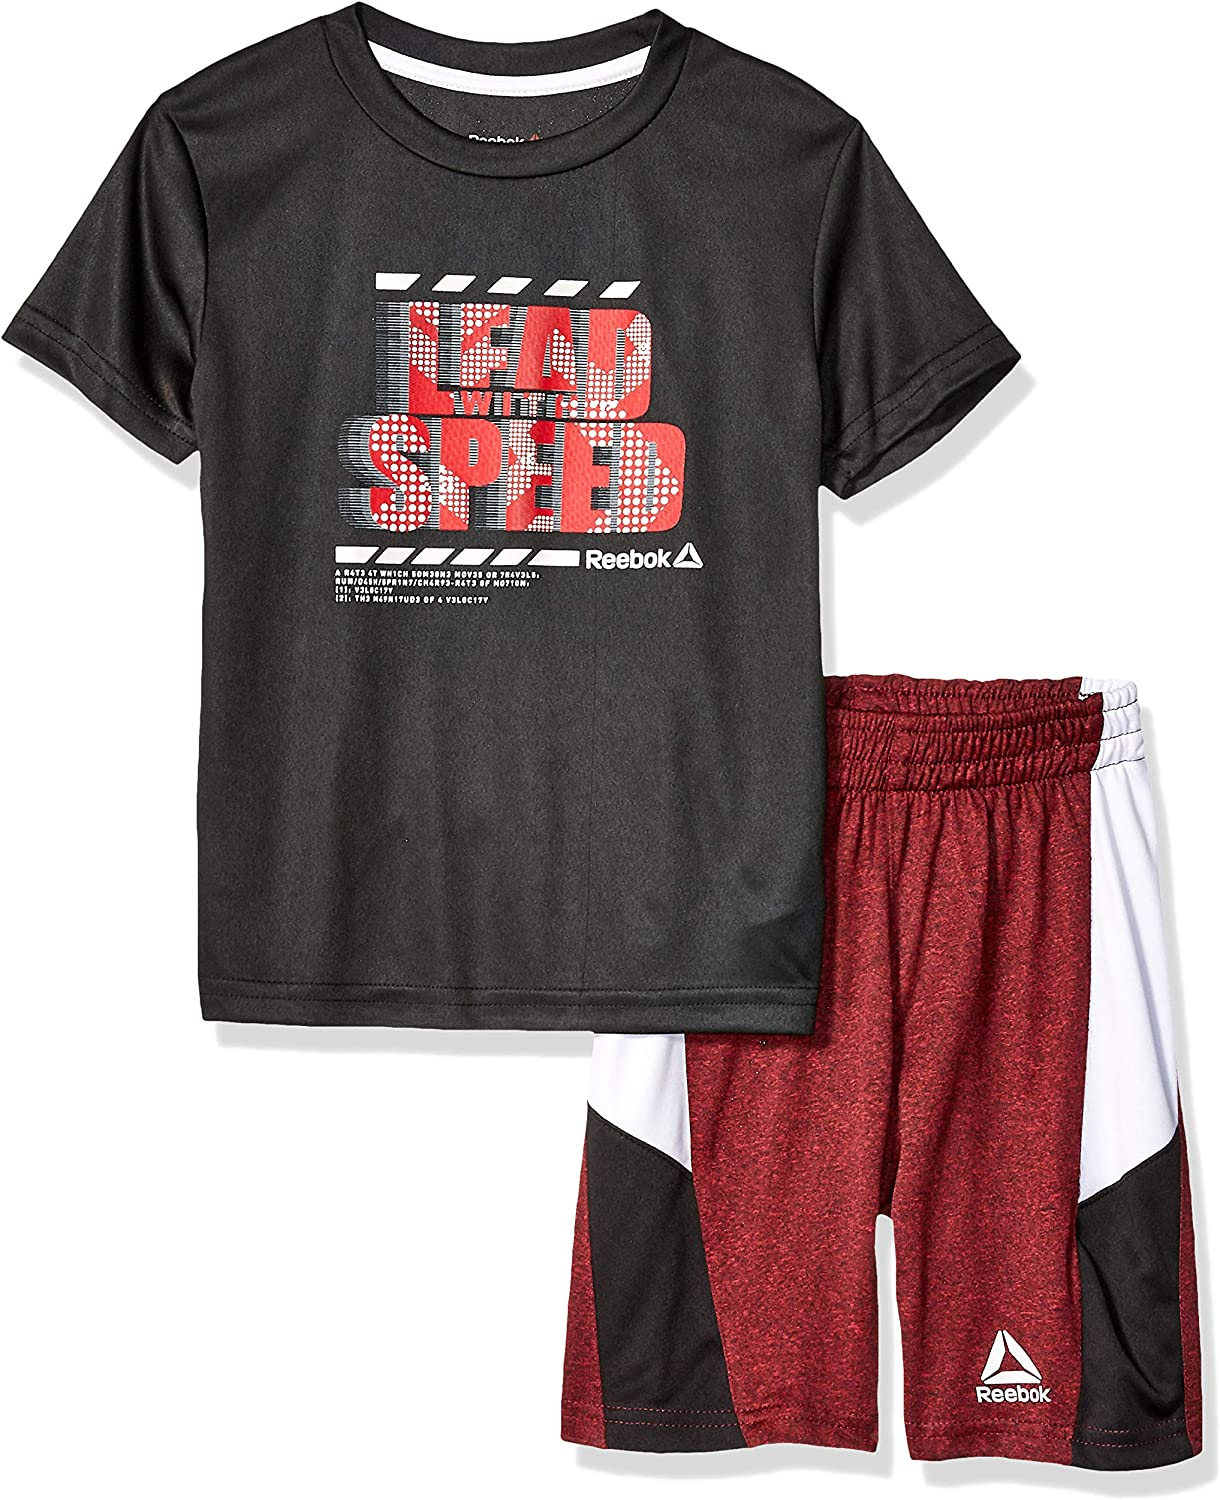 Reebok Boys Sleeve Athletic T-Shirt and Inexpensive Set Wholesale Pull-on Short